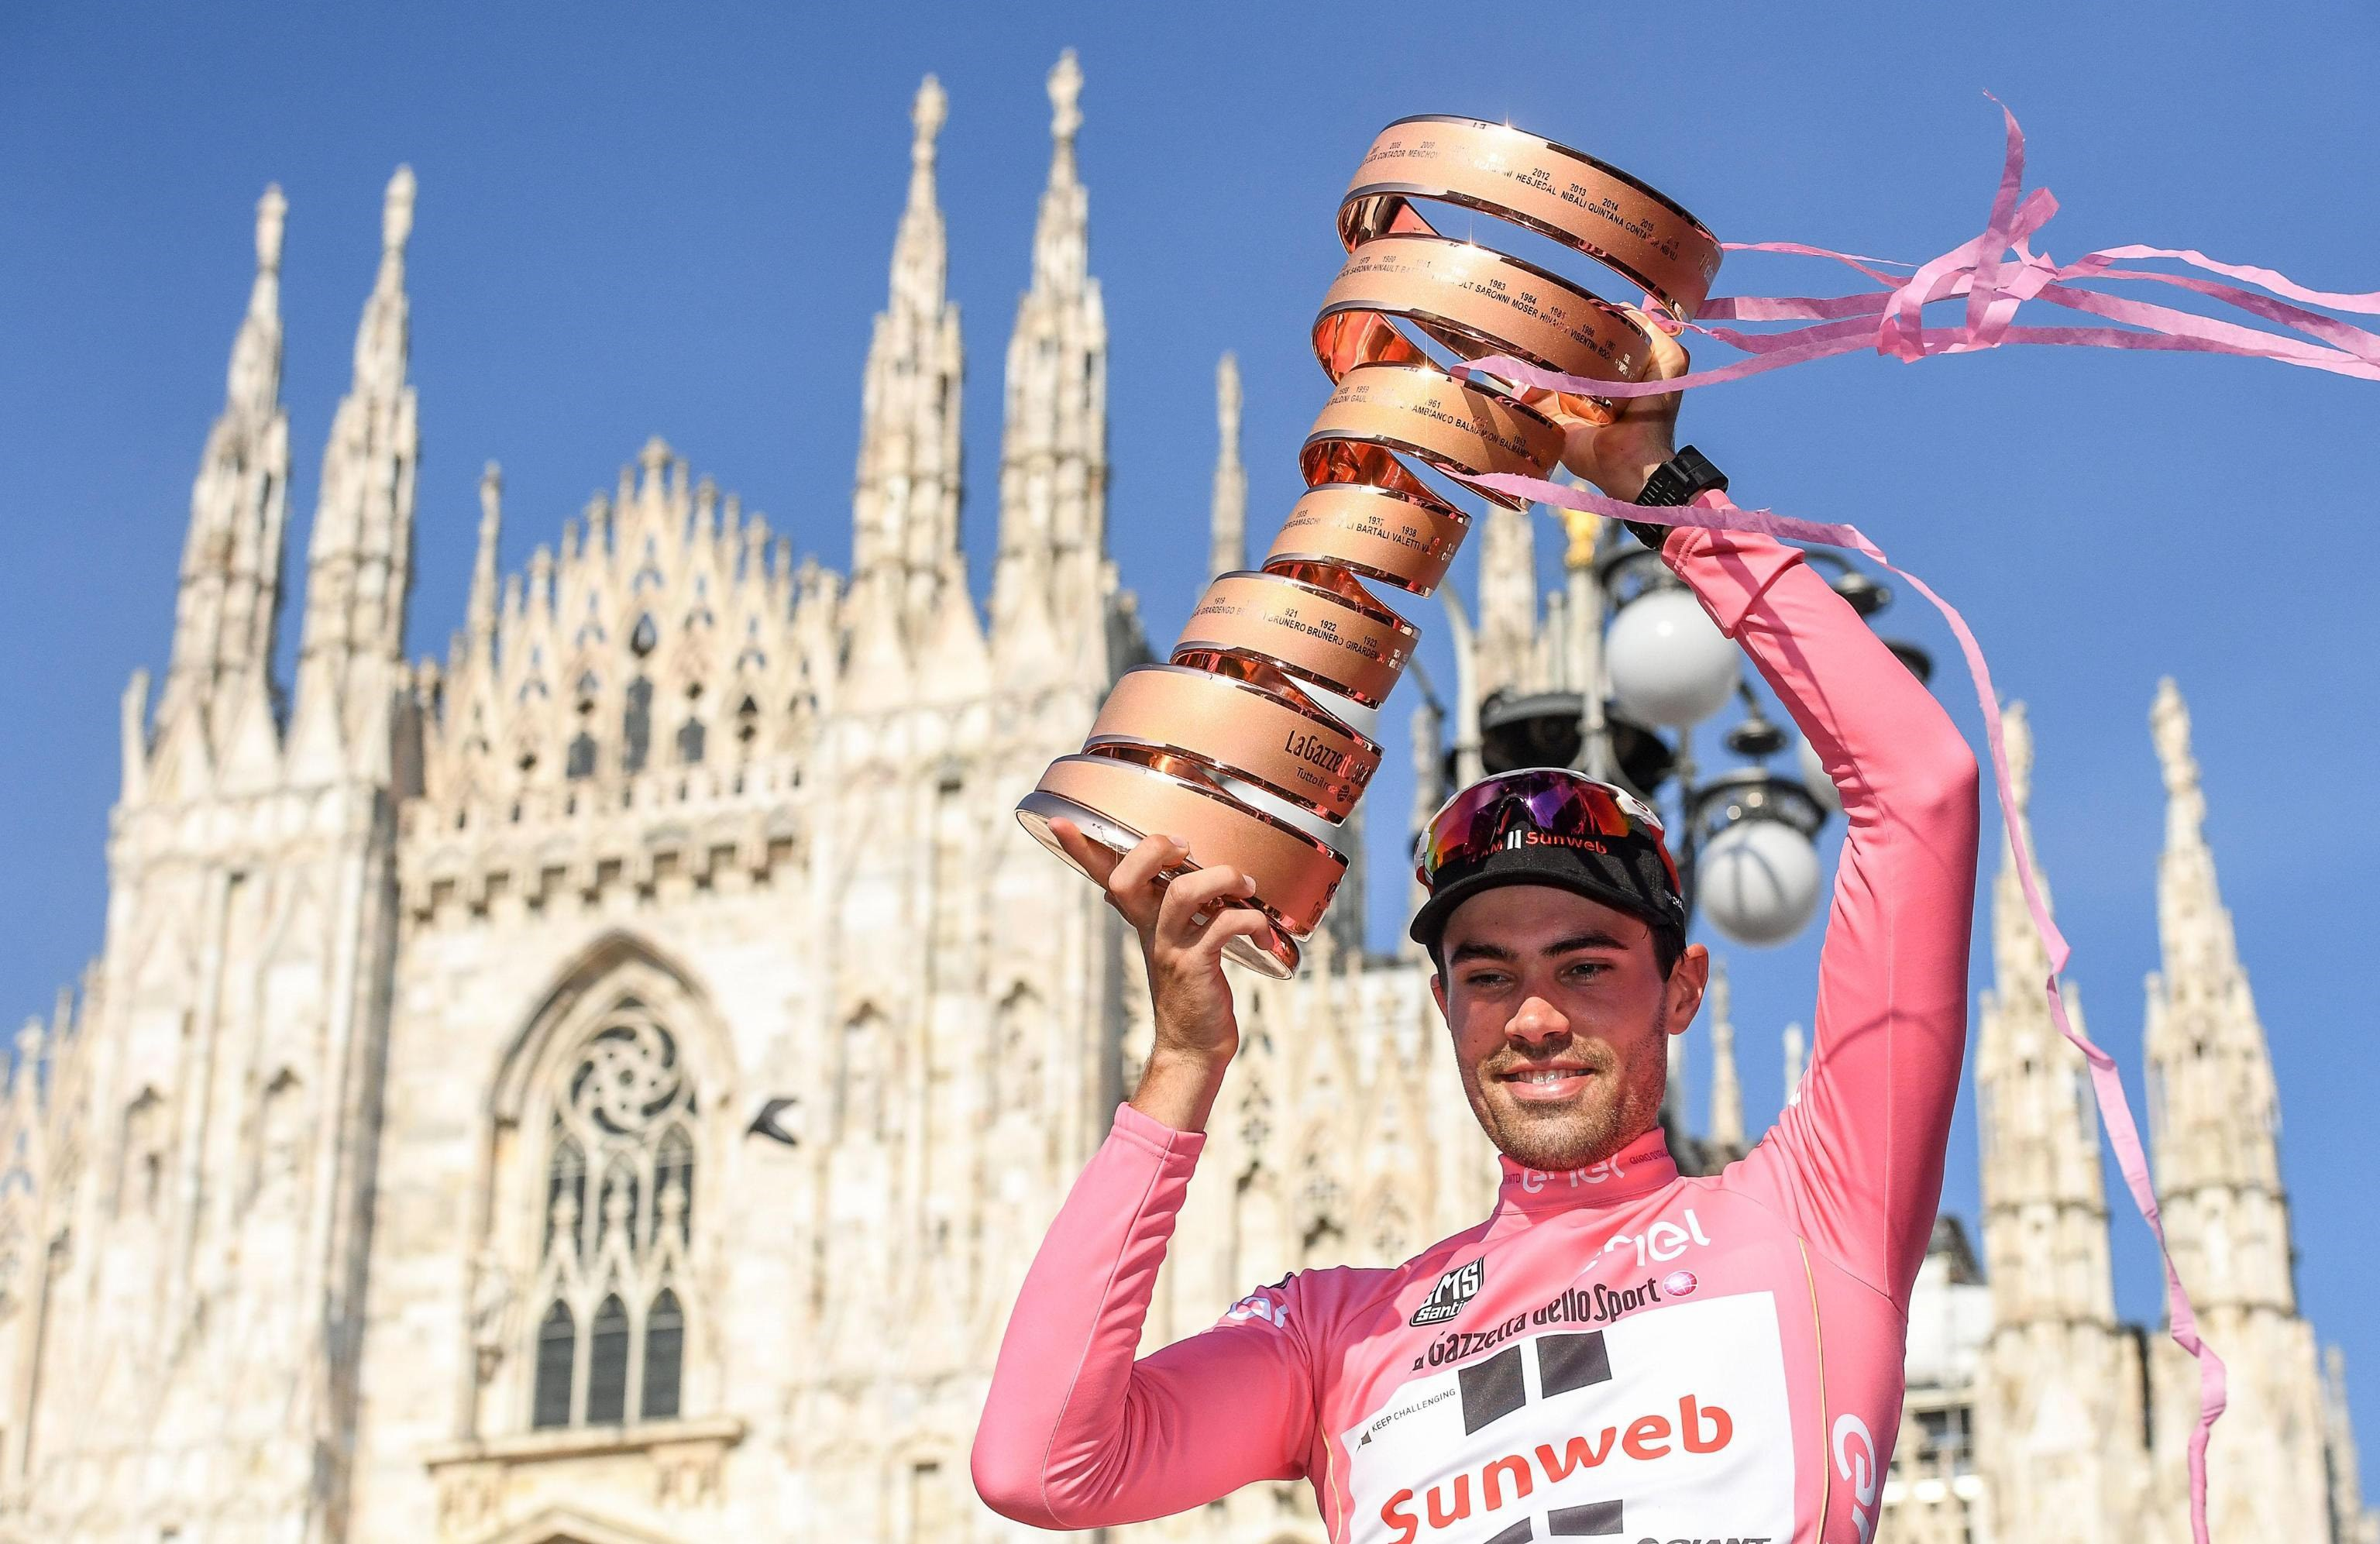 On this day in 2017: Tom Dumoulin wint als eerste Nederlander de Giro